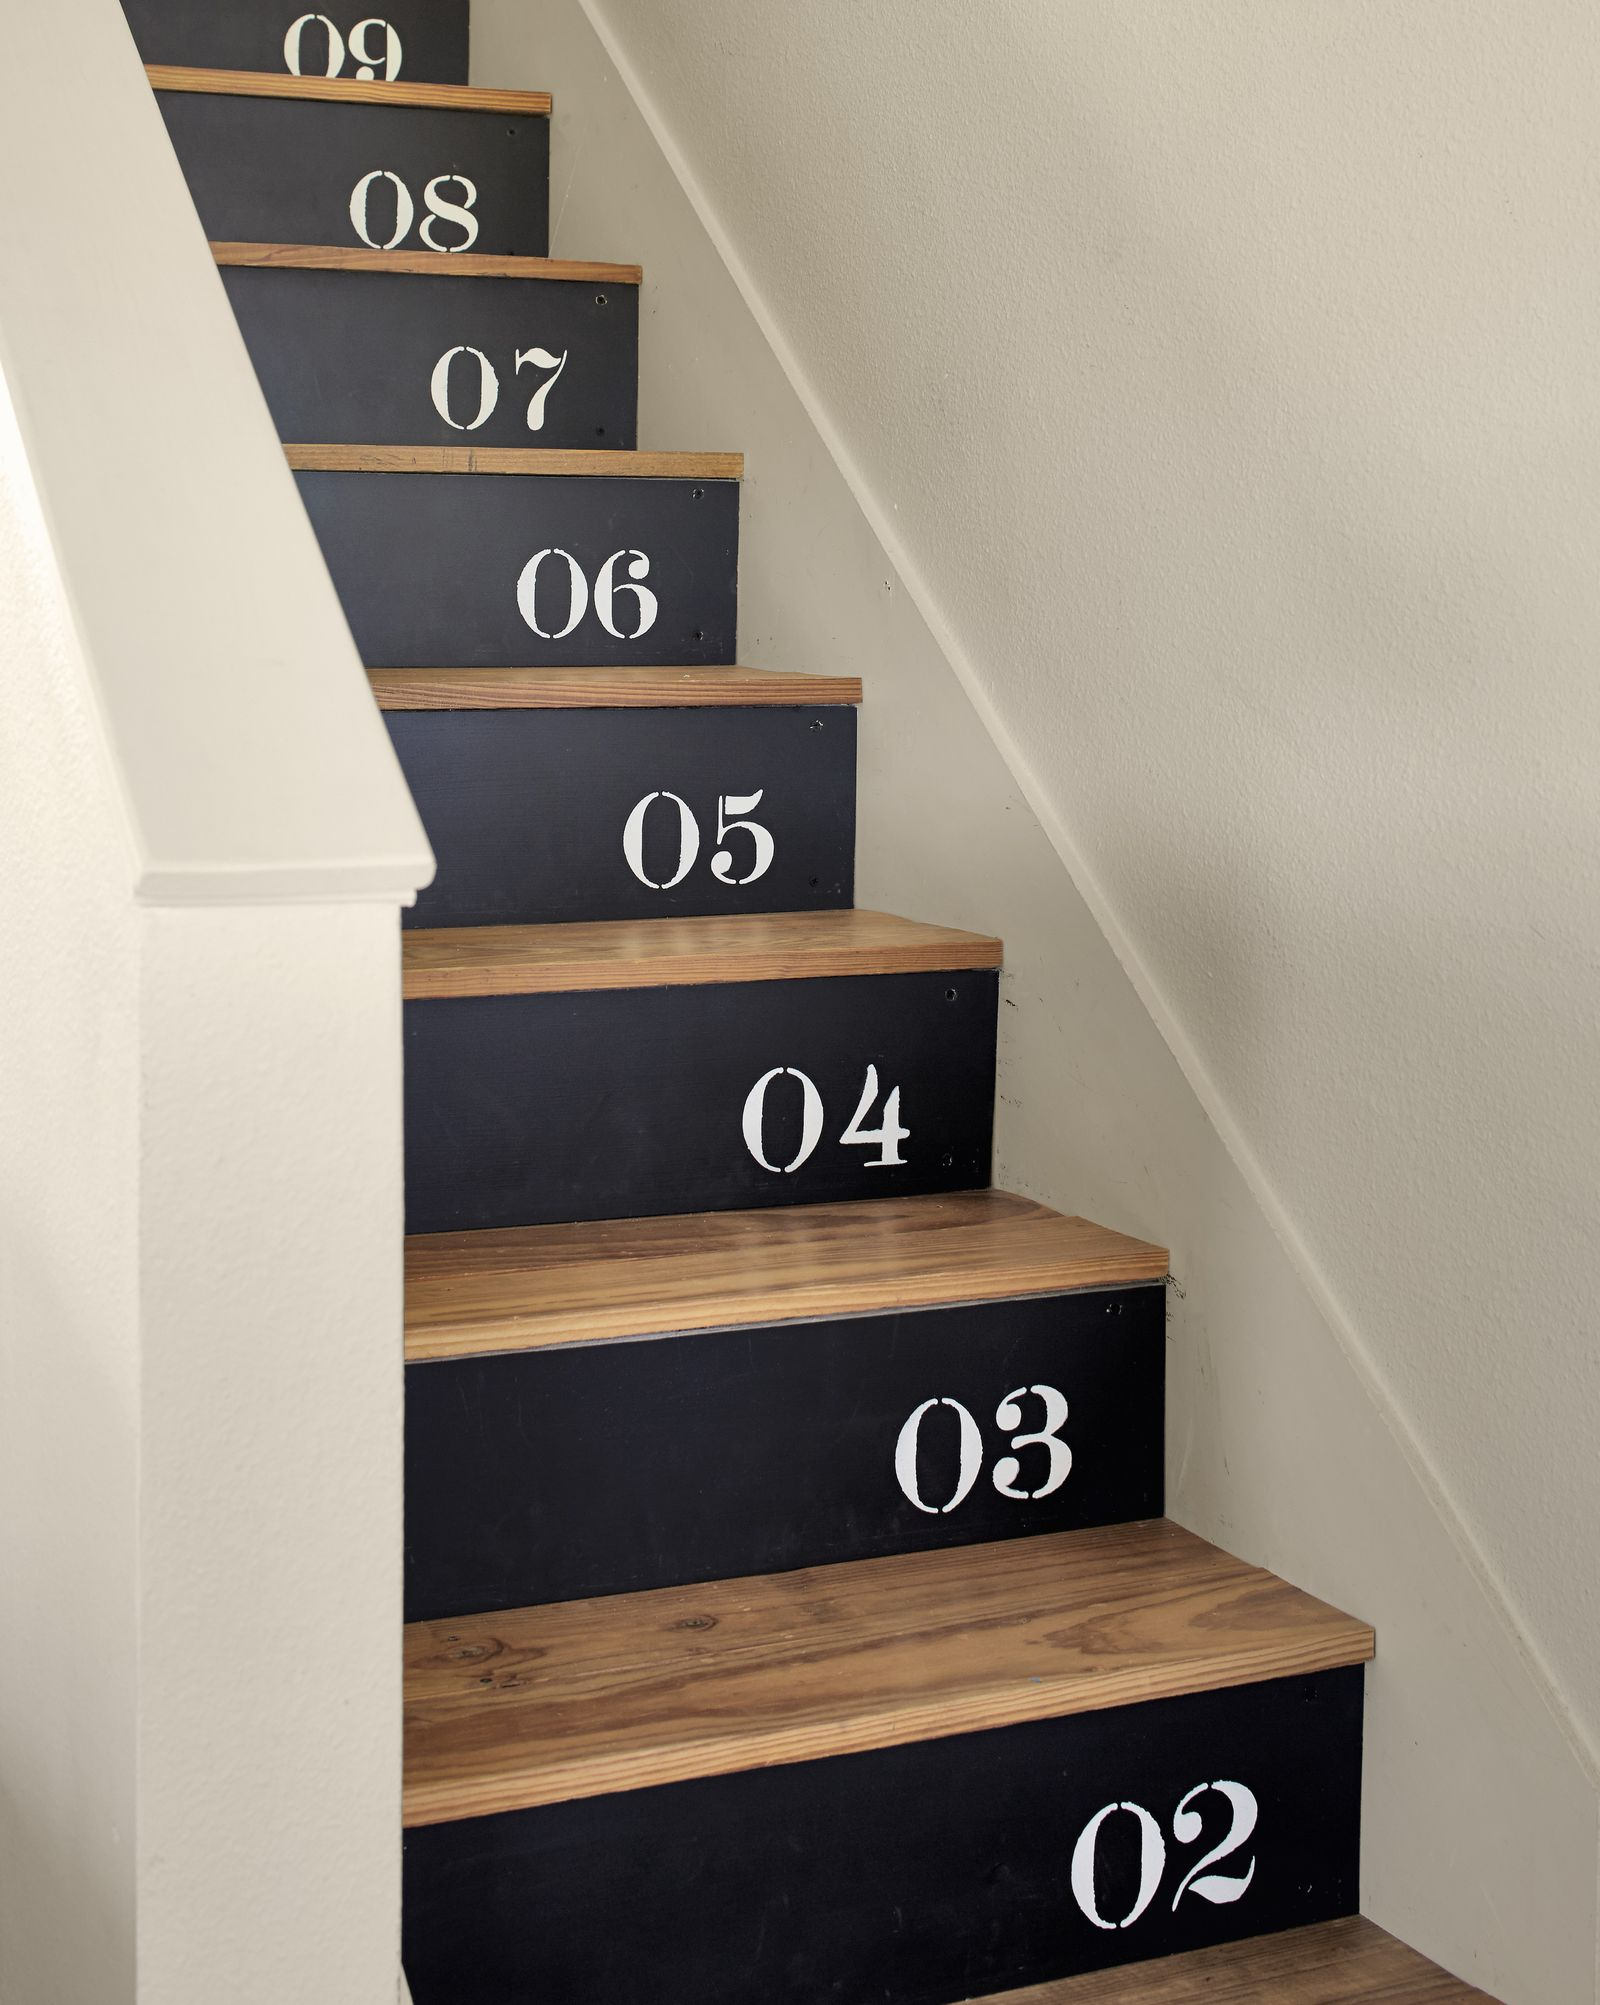 Creative 1 2 3 painted stairs Pristine Painted Floor Ideas To Have A Masterpiece Presentation